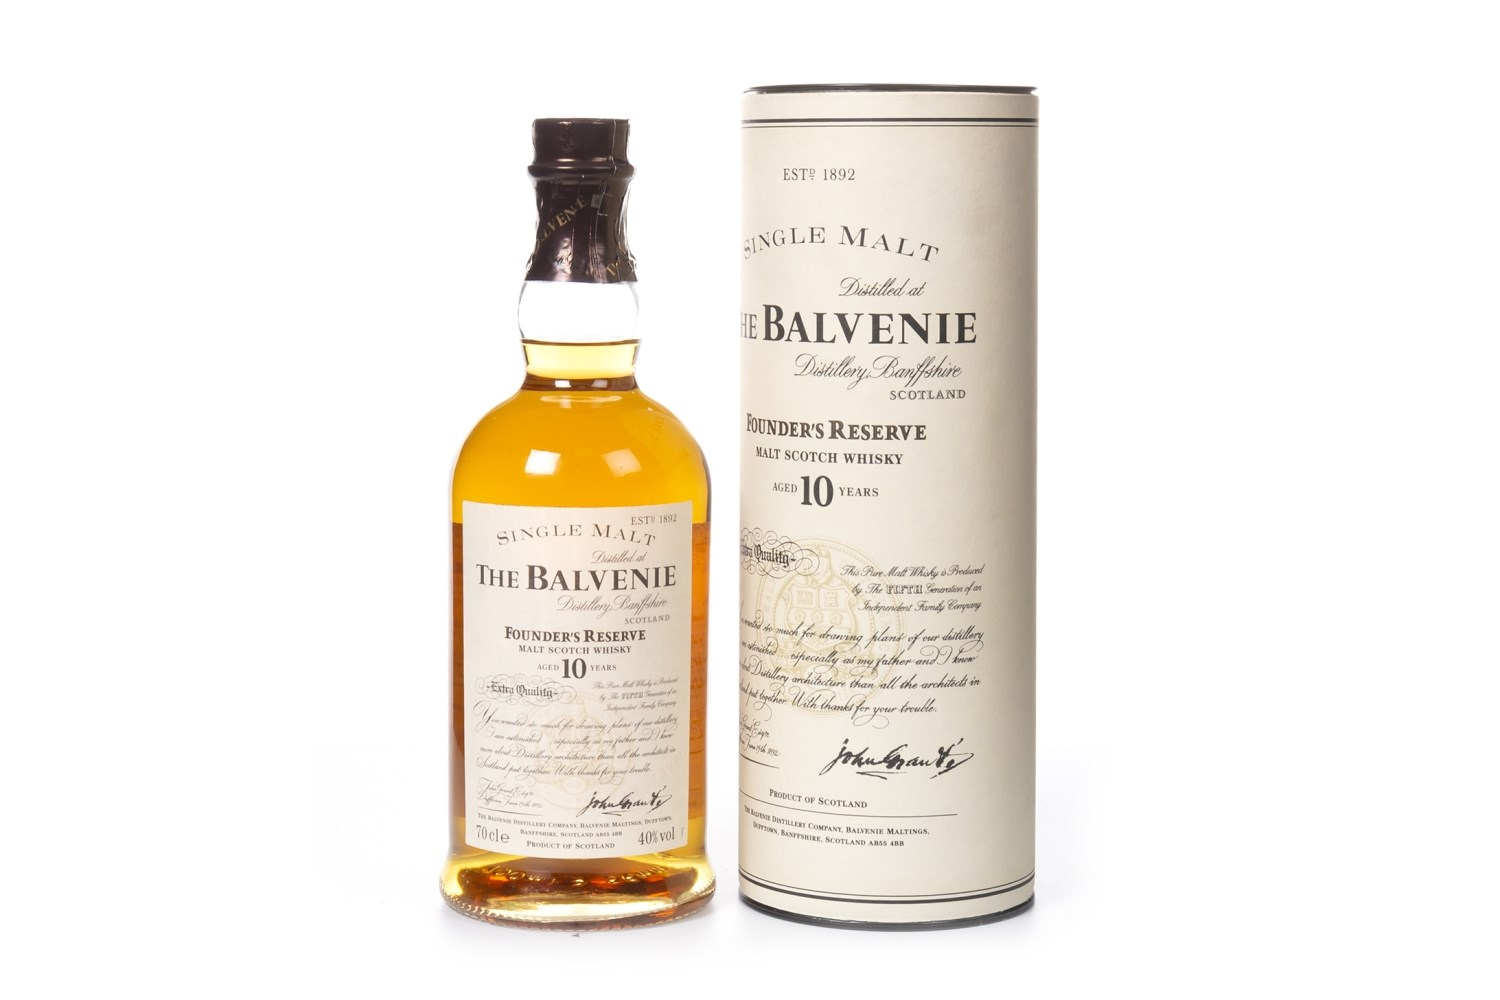 Lot 1031 - BALVENIE FOUNDER'S RESERVE AGED 10 YEARS